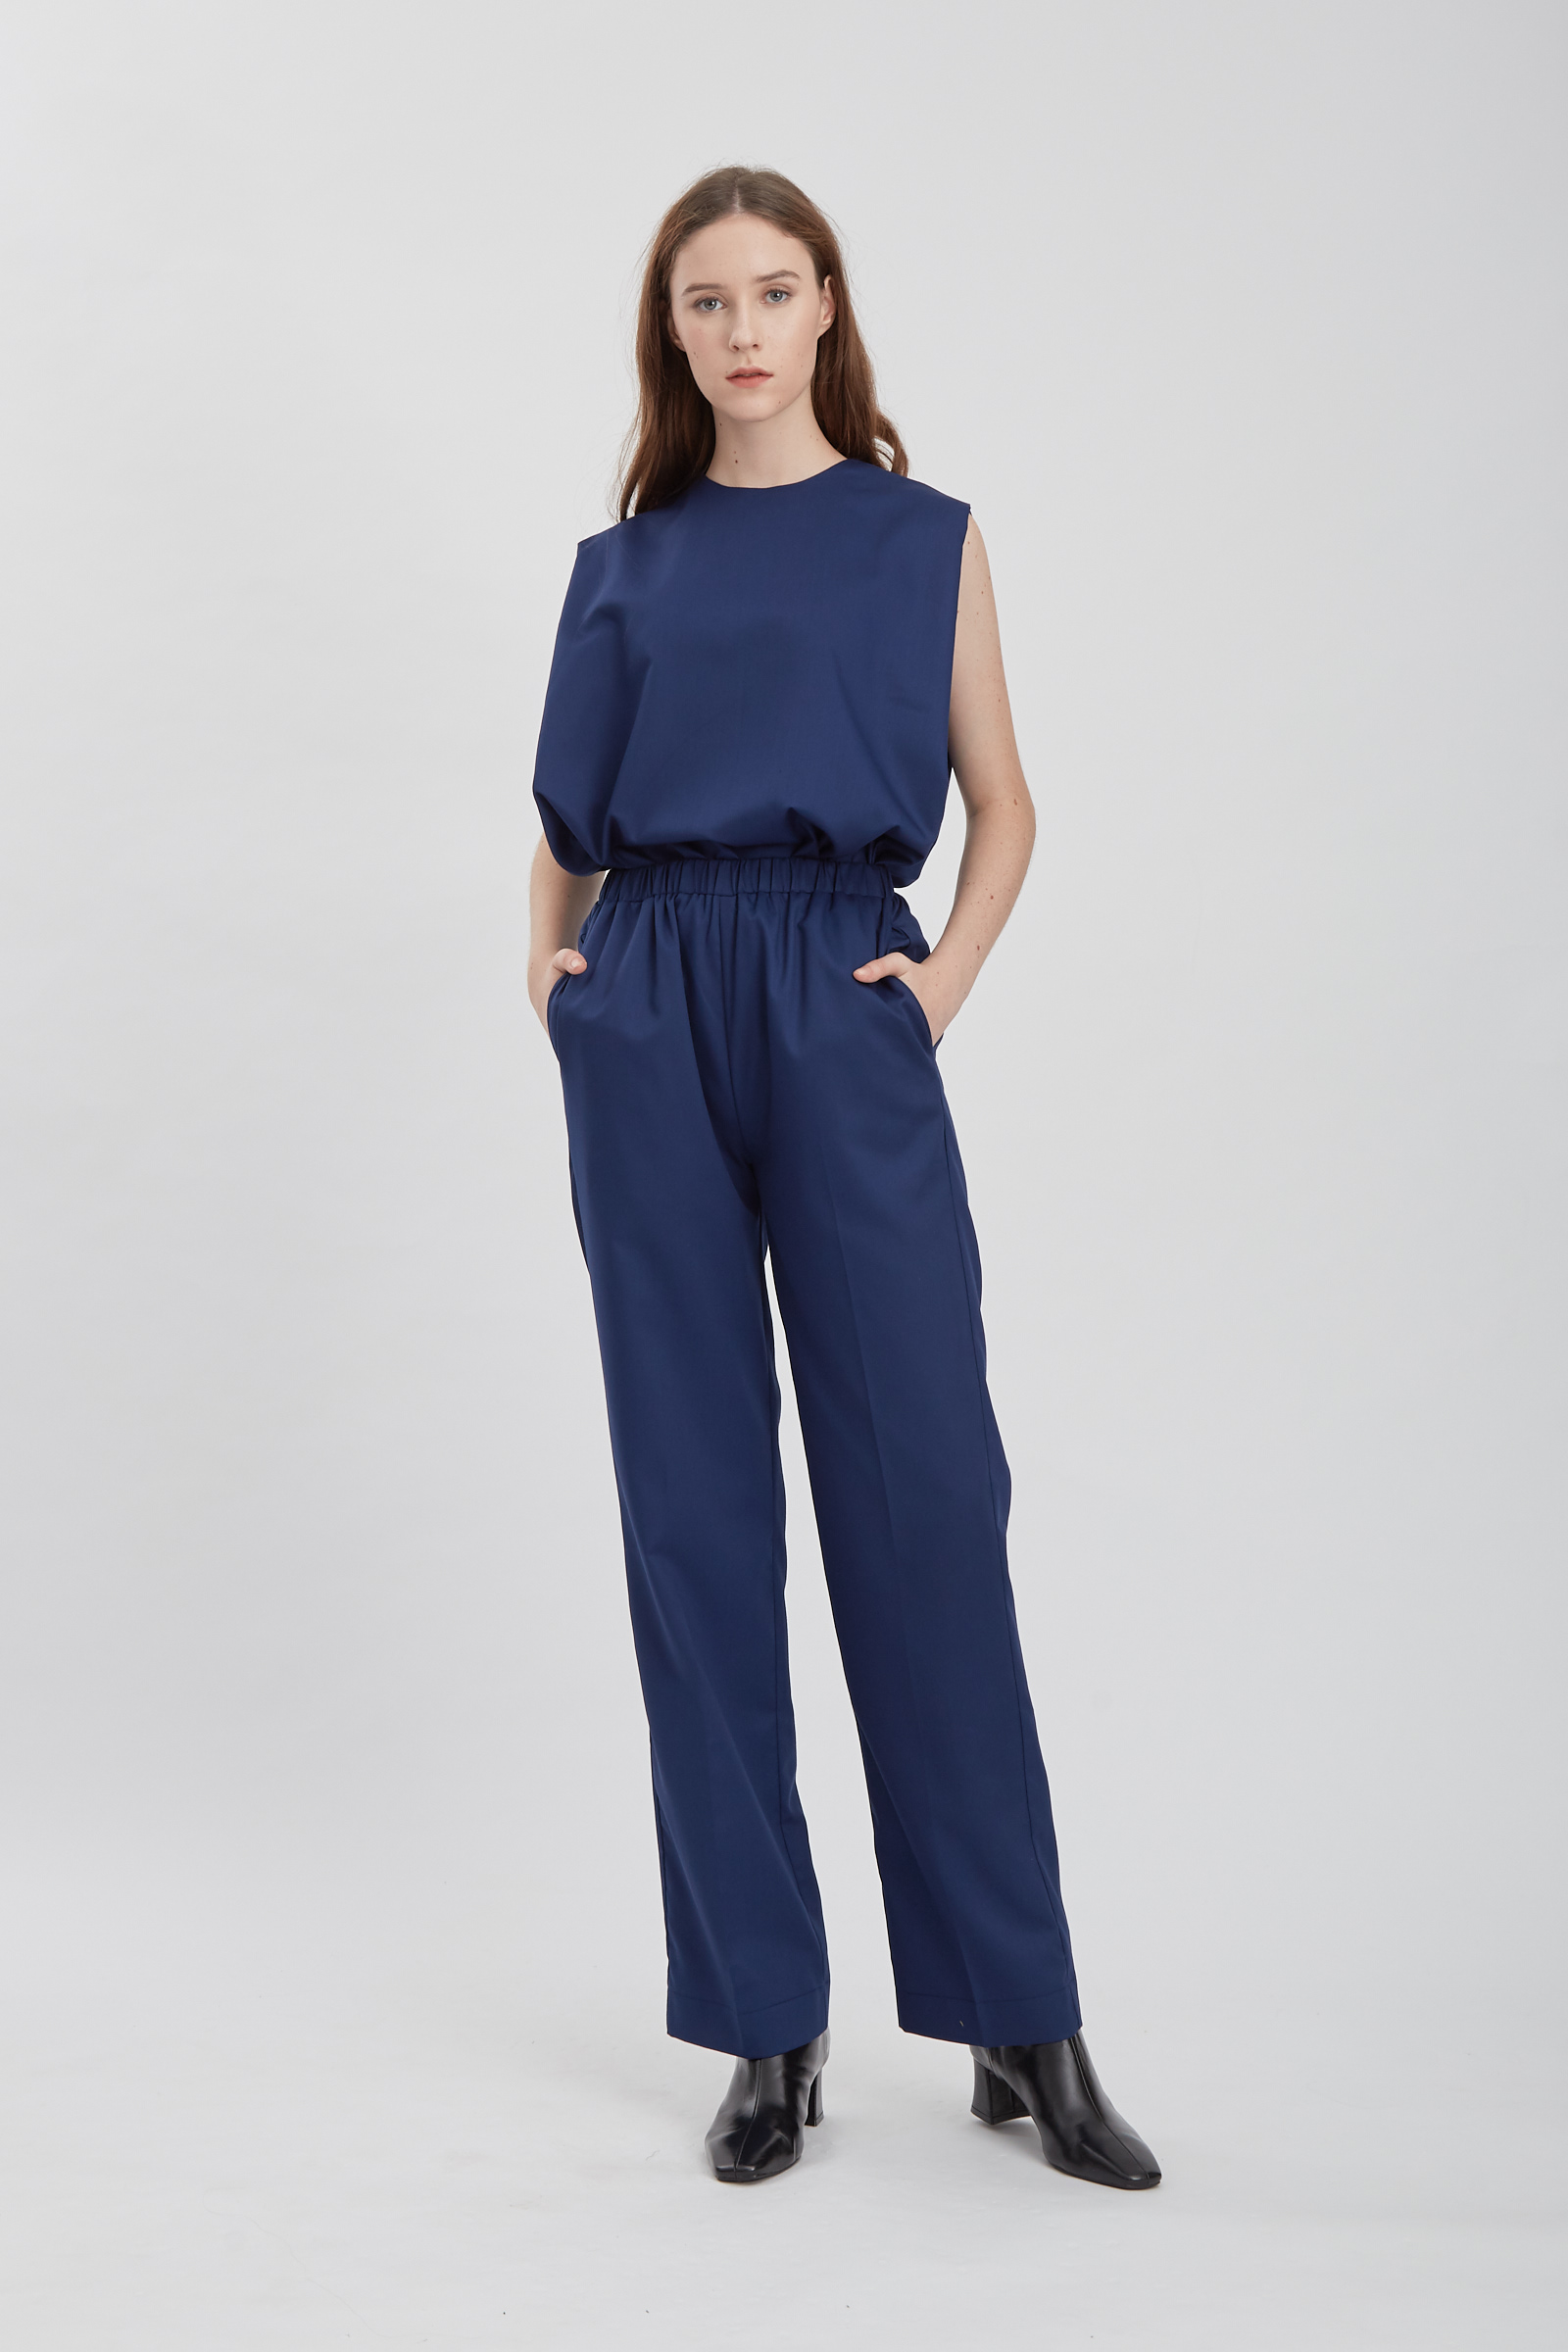 Shopatvelvet Relax Pants Navy